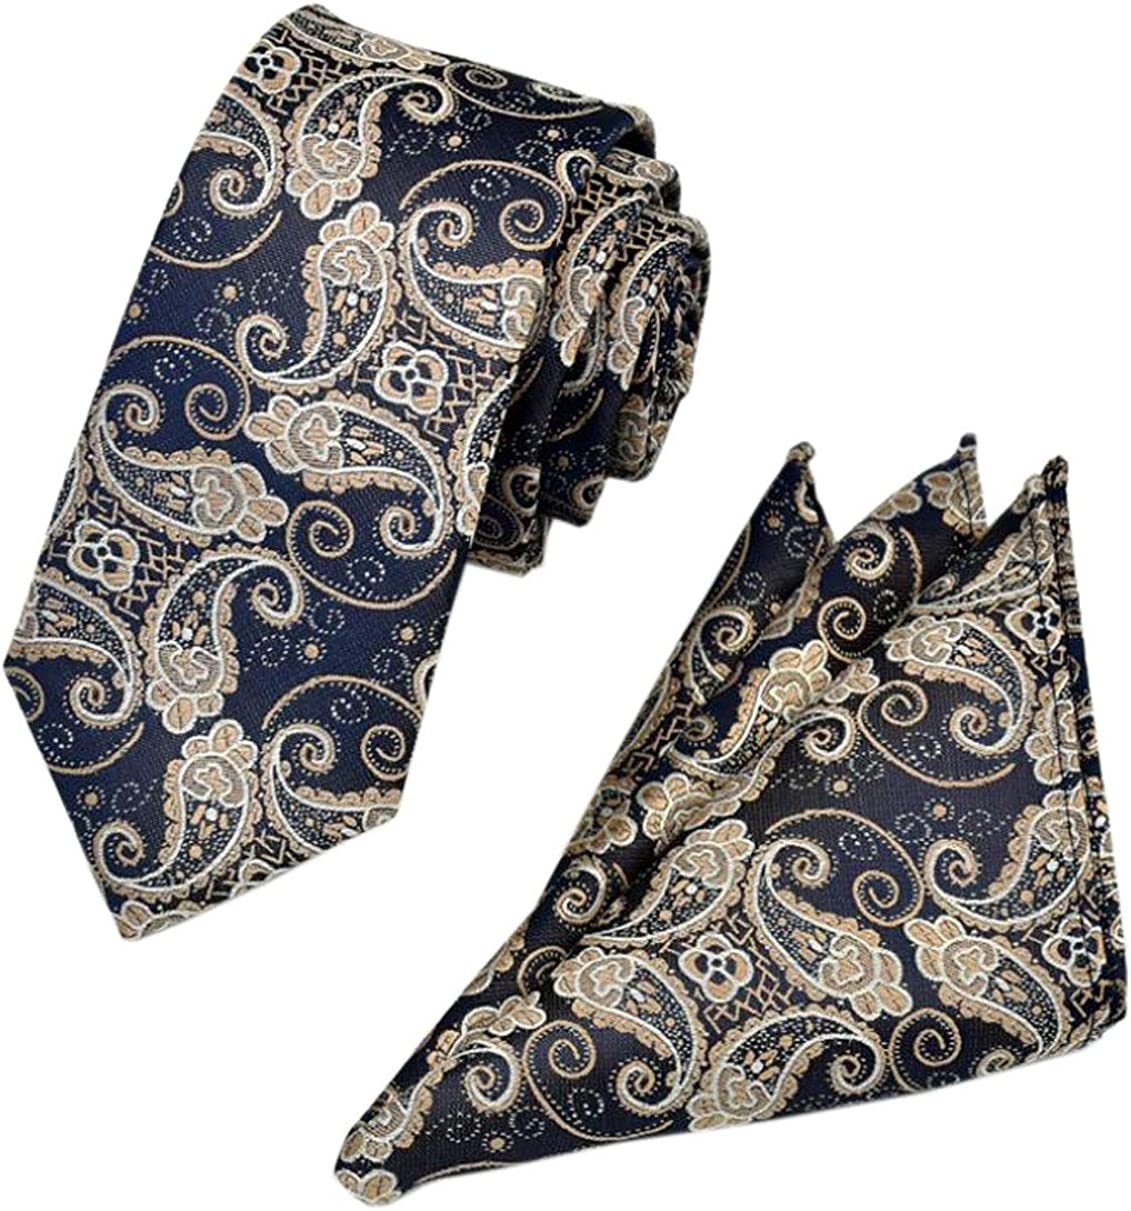 XueXian Men's Patterned Polyester Offie Bussiness Necktie Pocket Square Tie Set